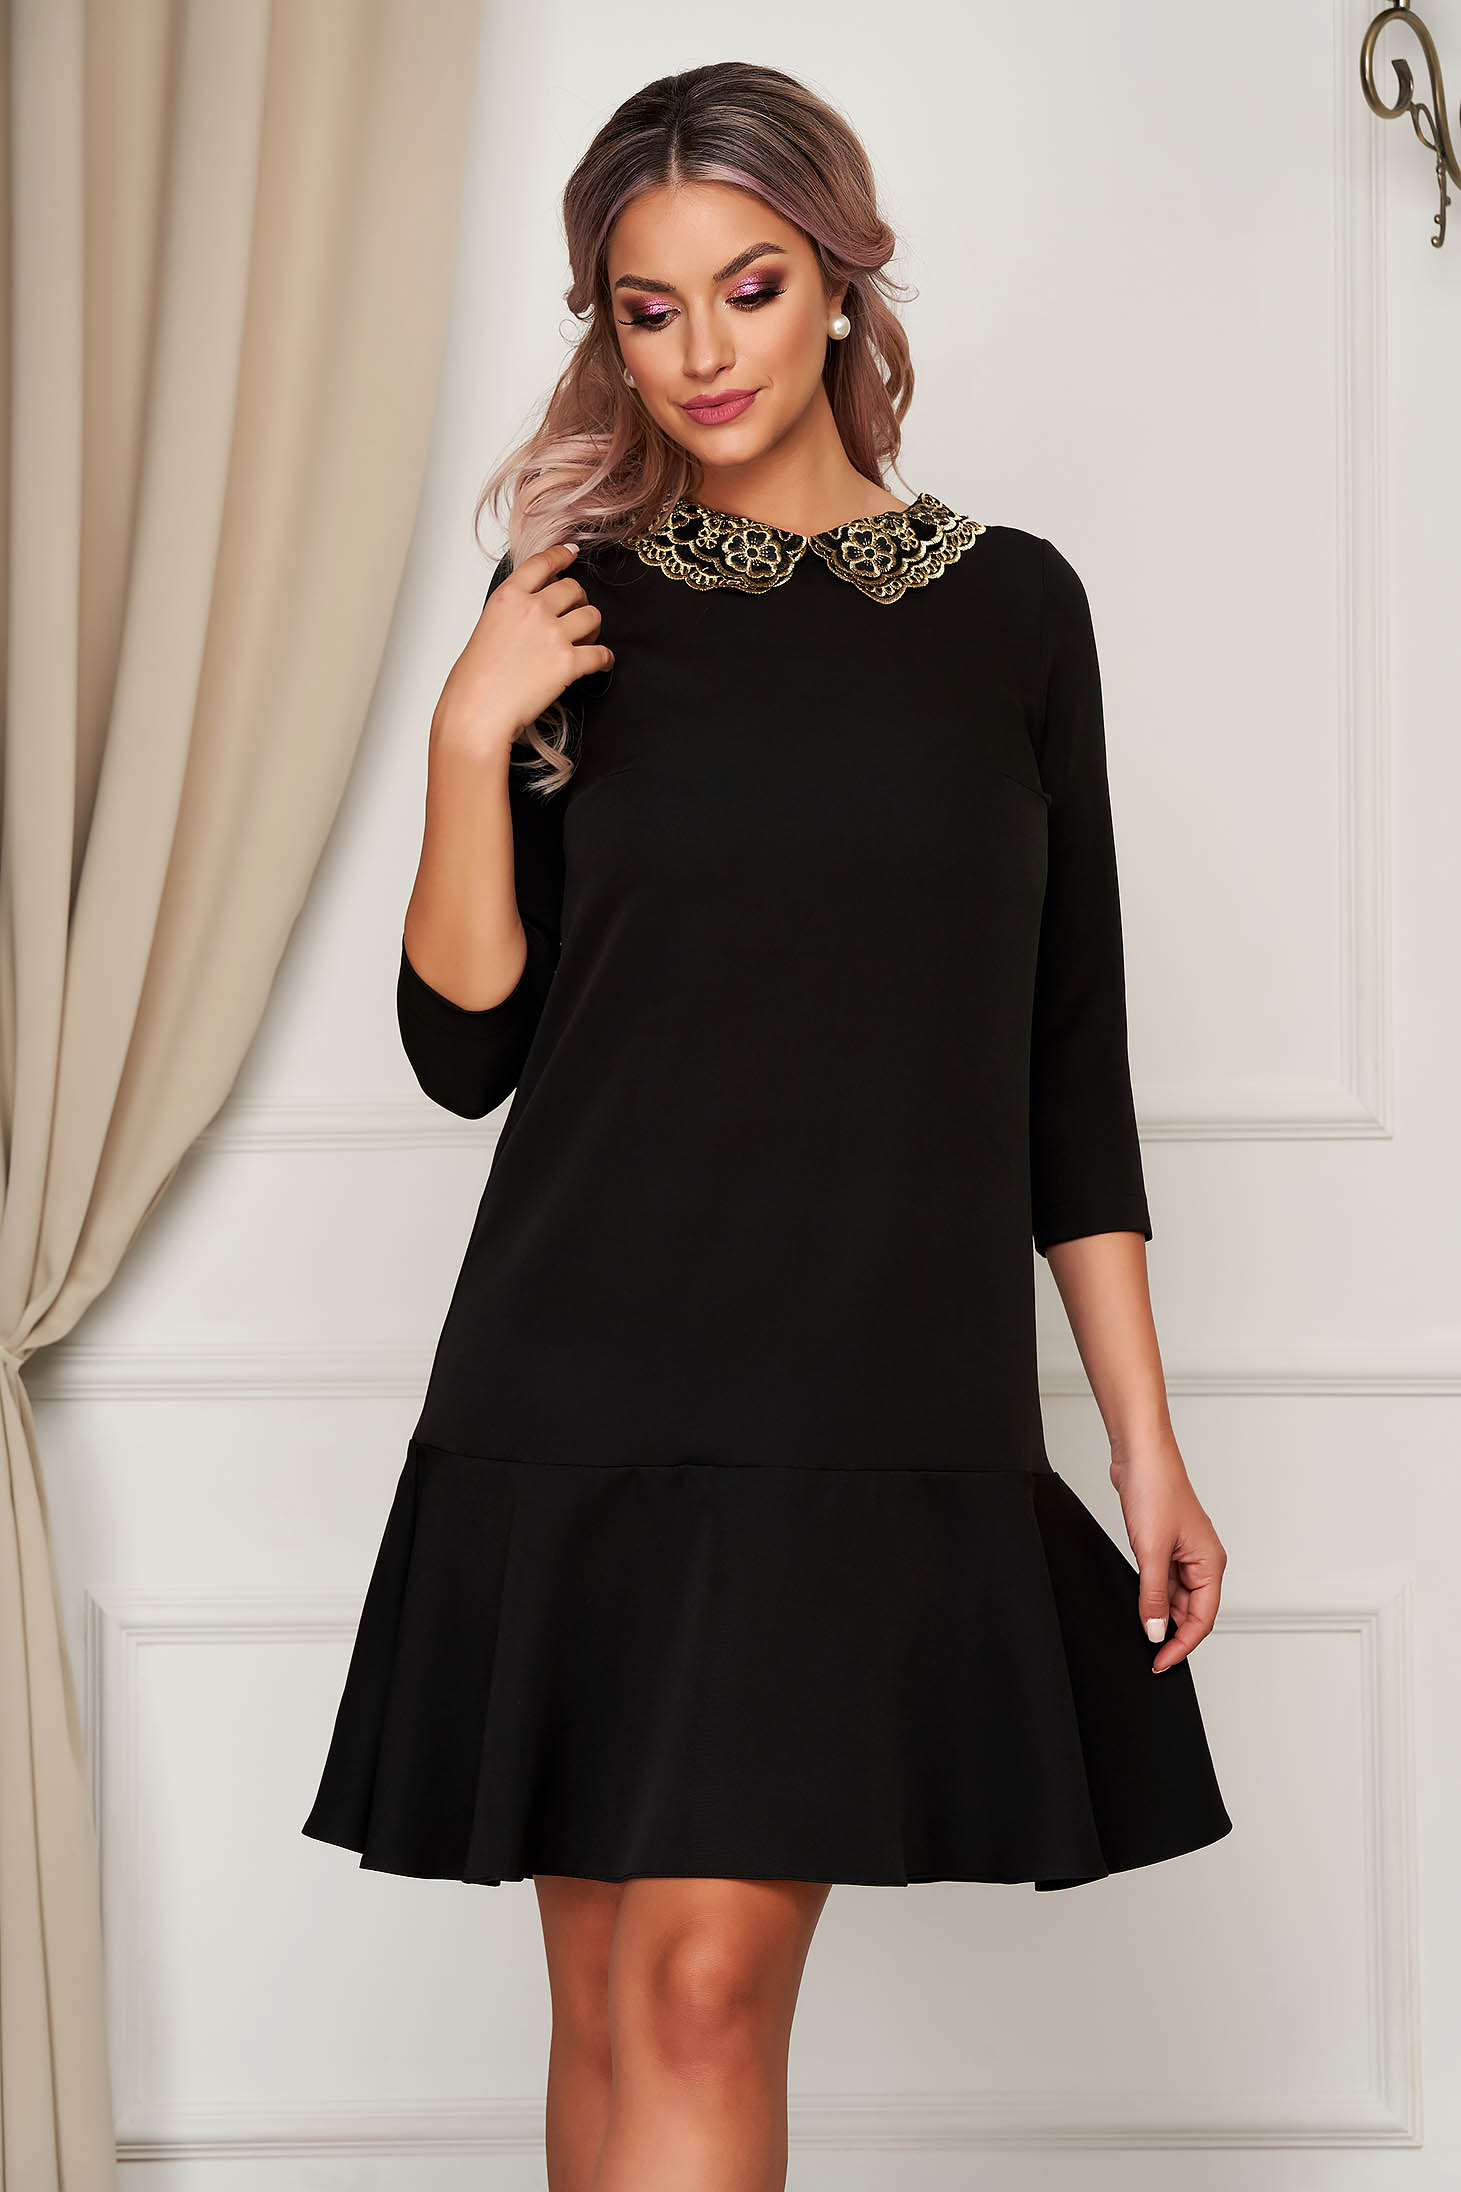 StarShinerS black dress elegant flared slightly elastic fabric with embroidery details